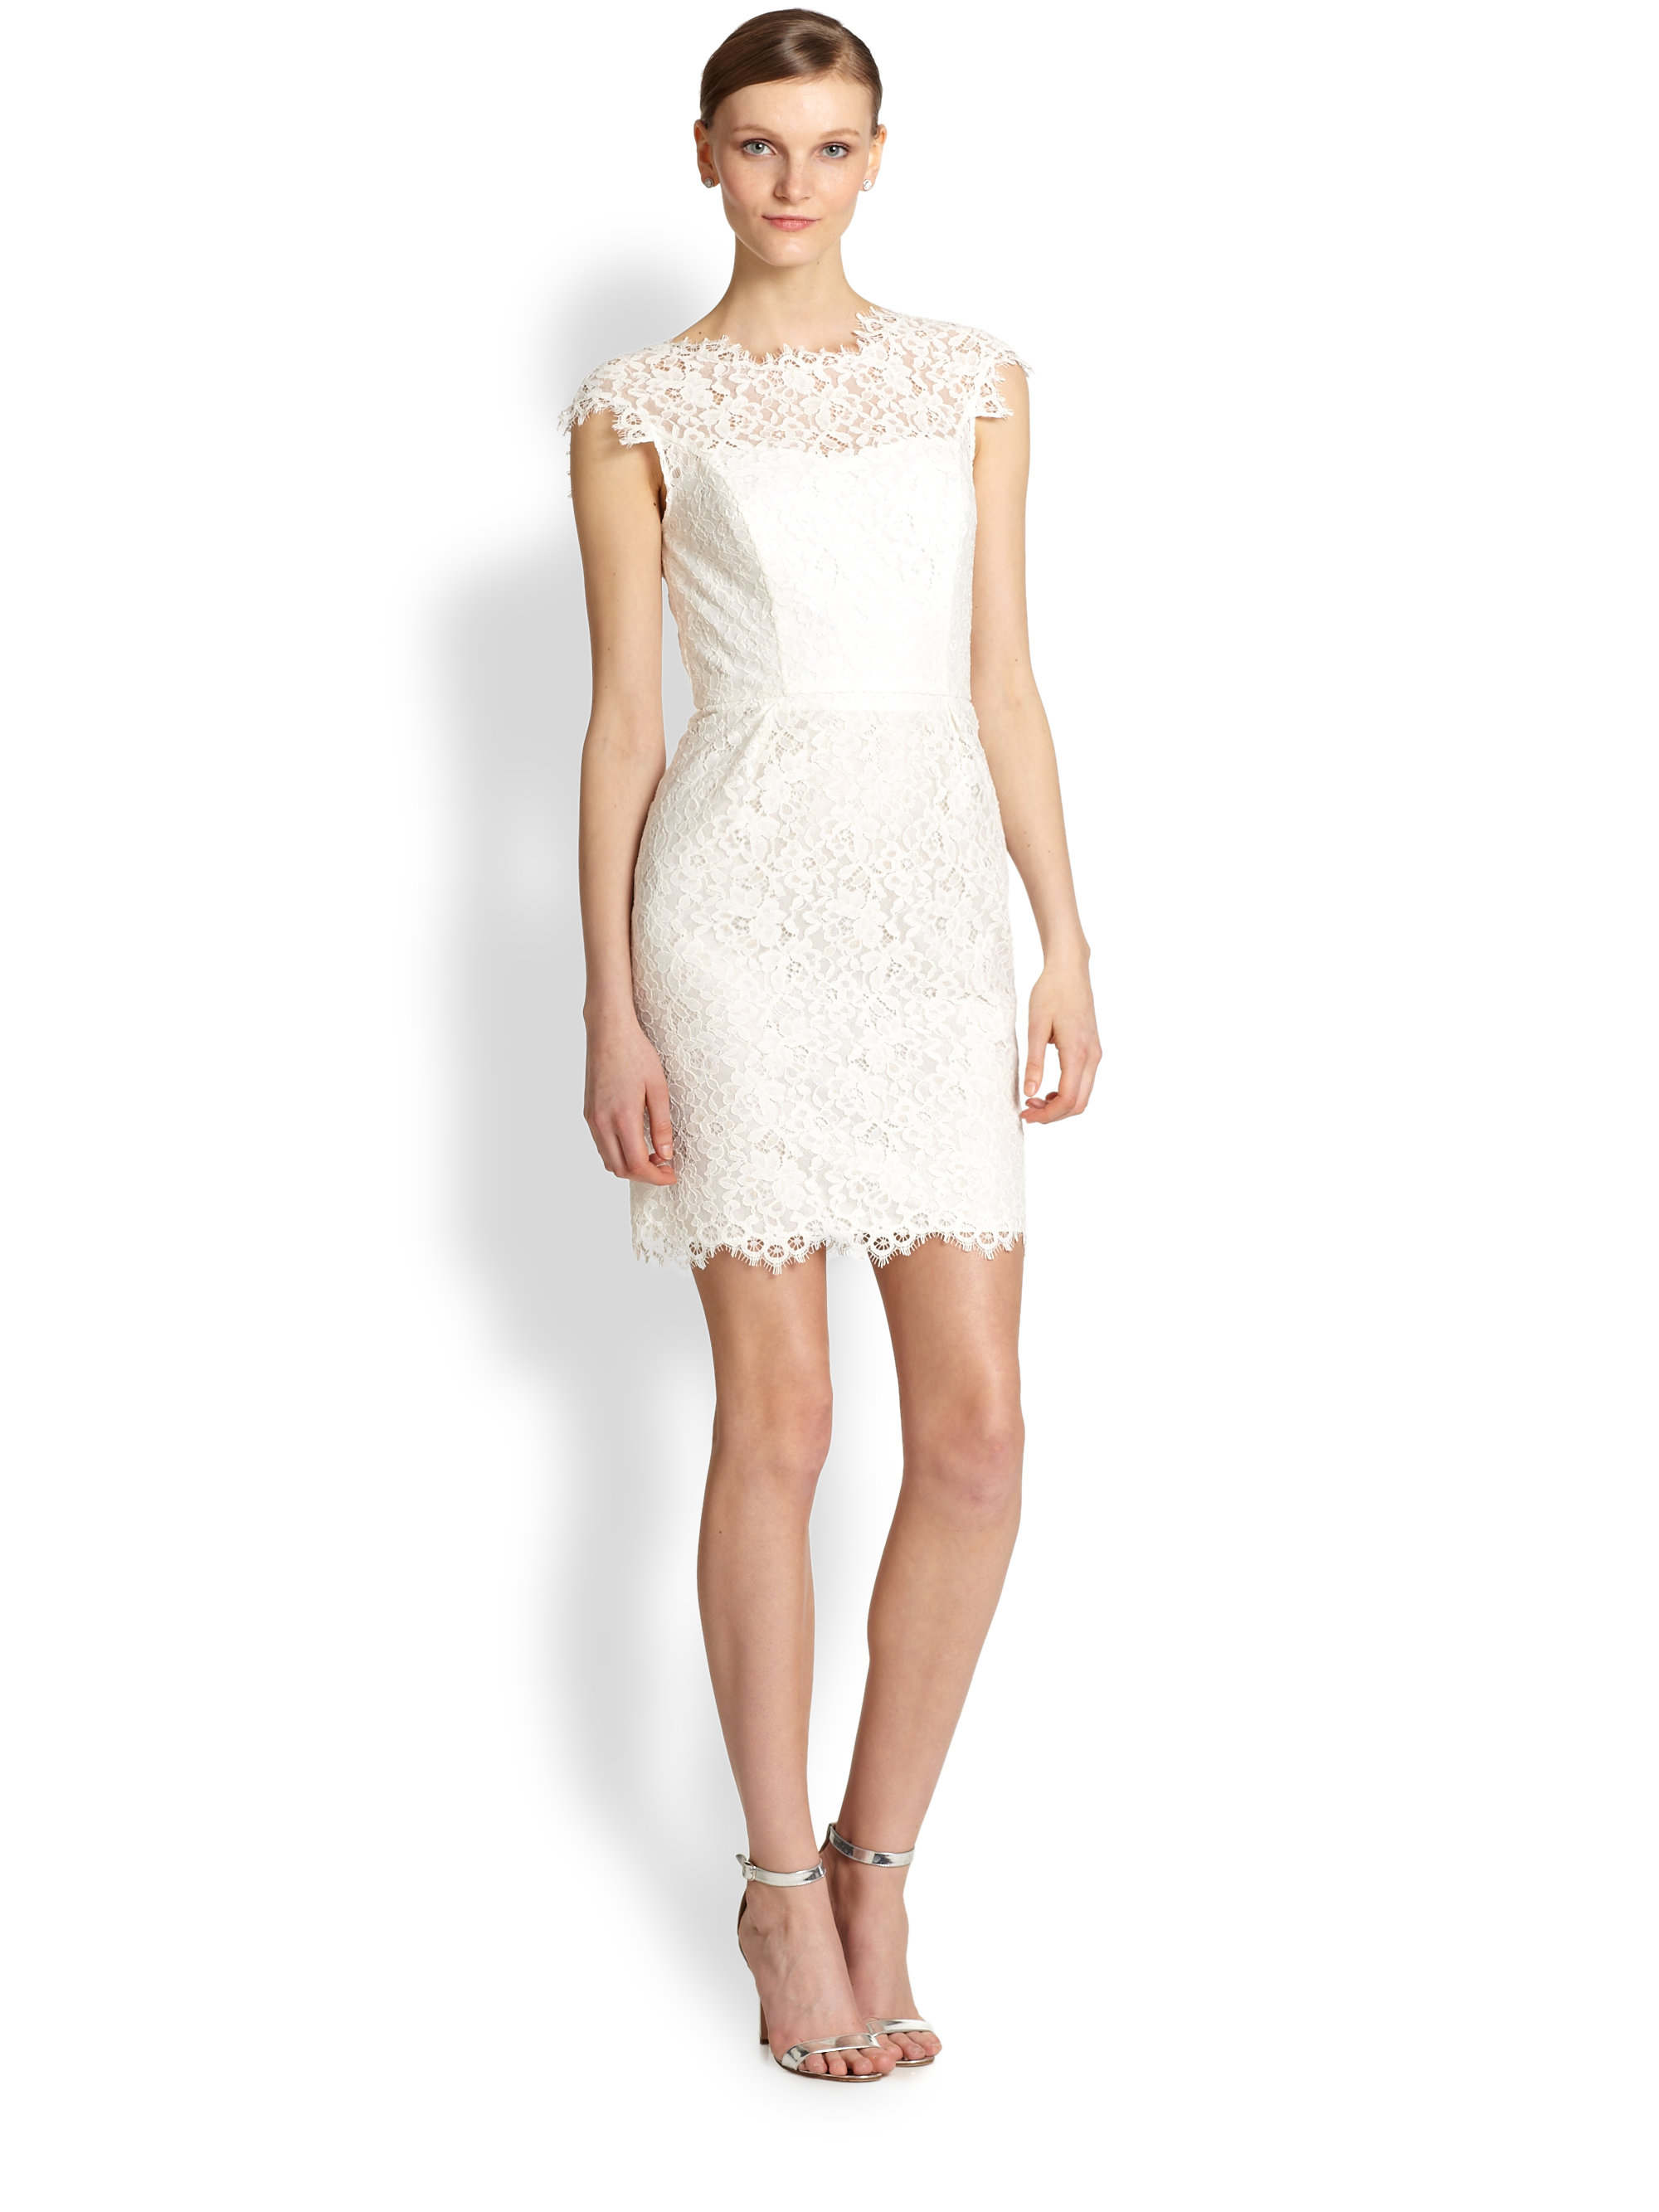 Shoshanna Scarlett Lace Dress in White | Lyst